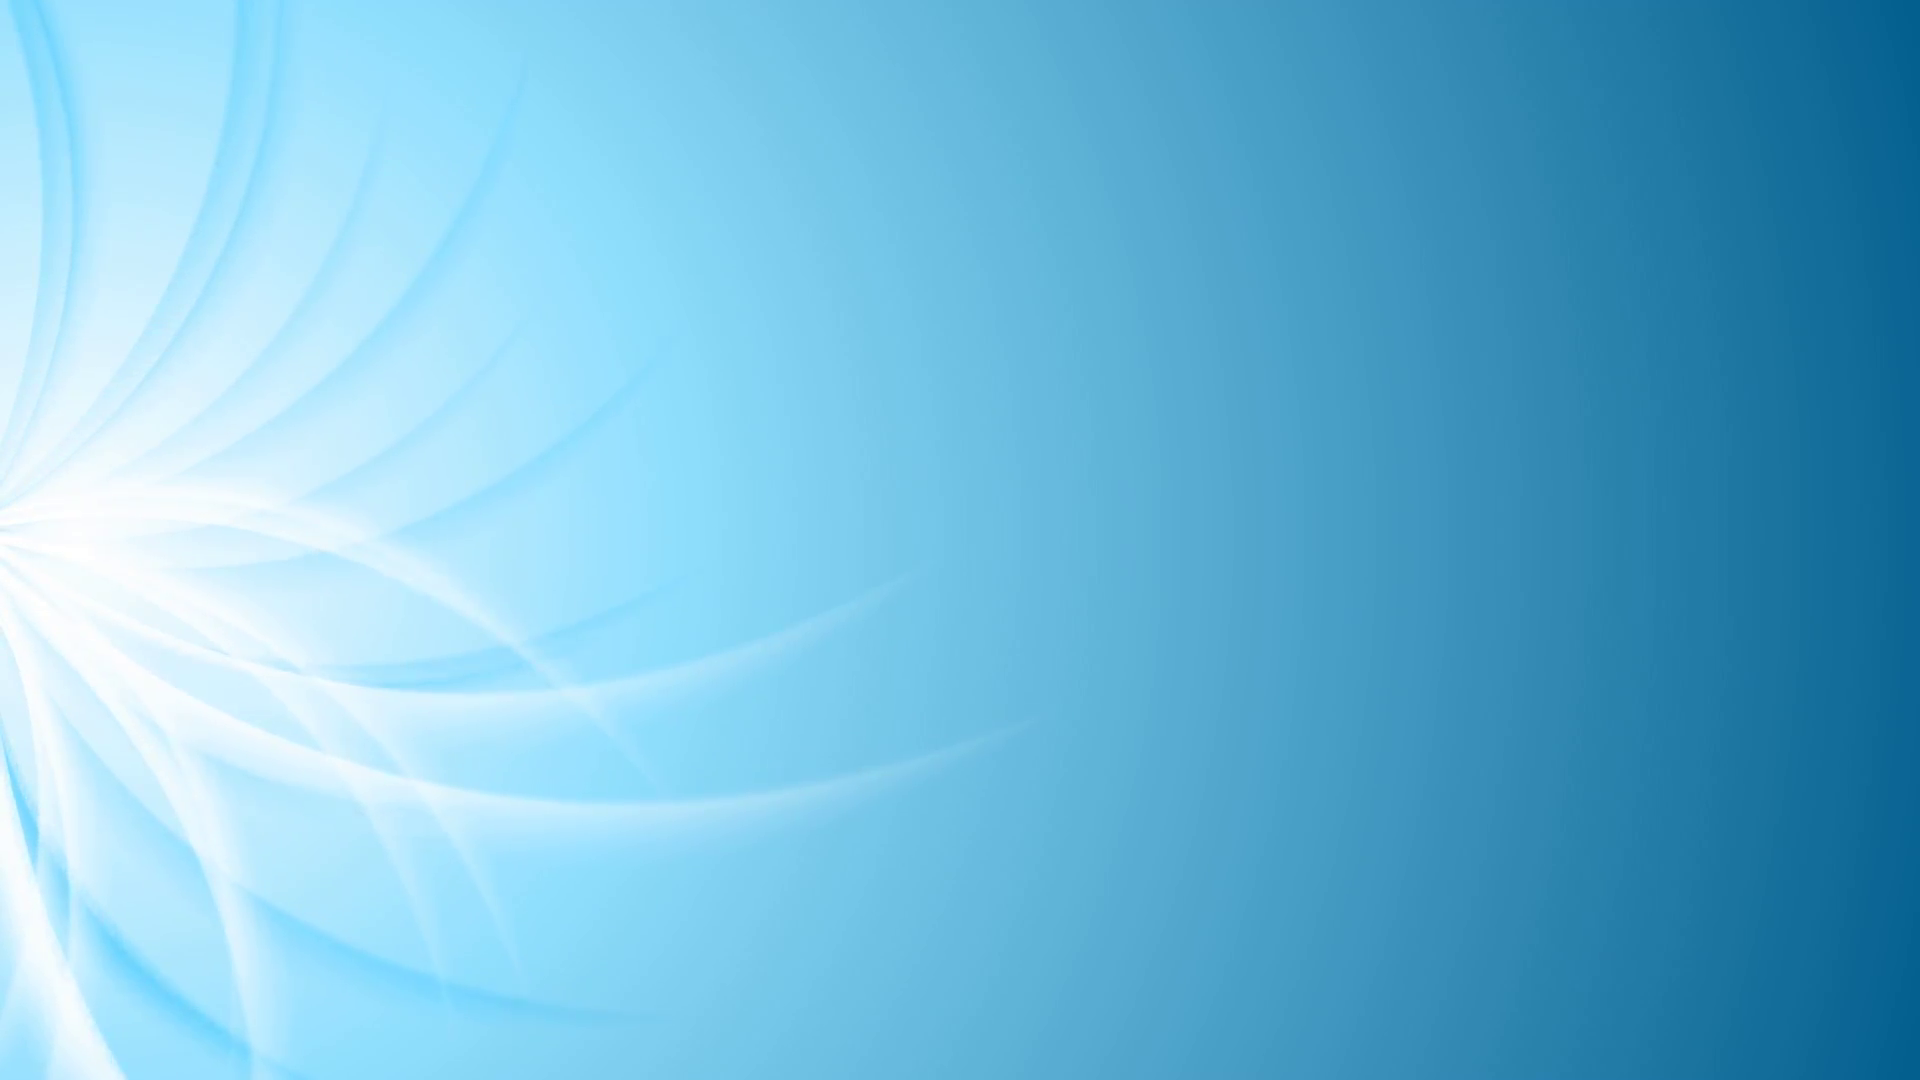 Bright blue waves elegant abstract background. Video corporate ...